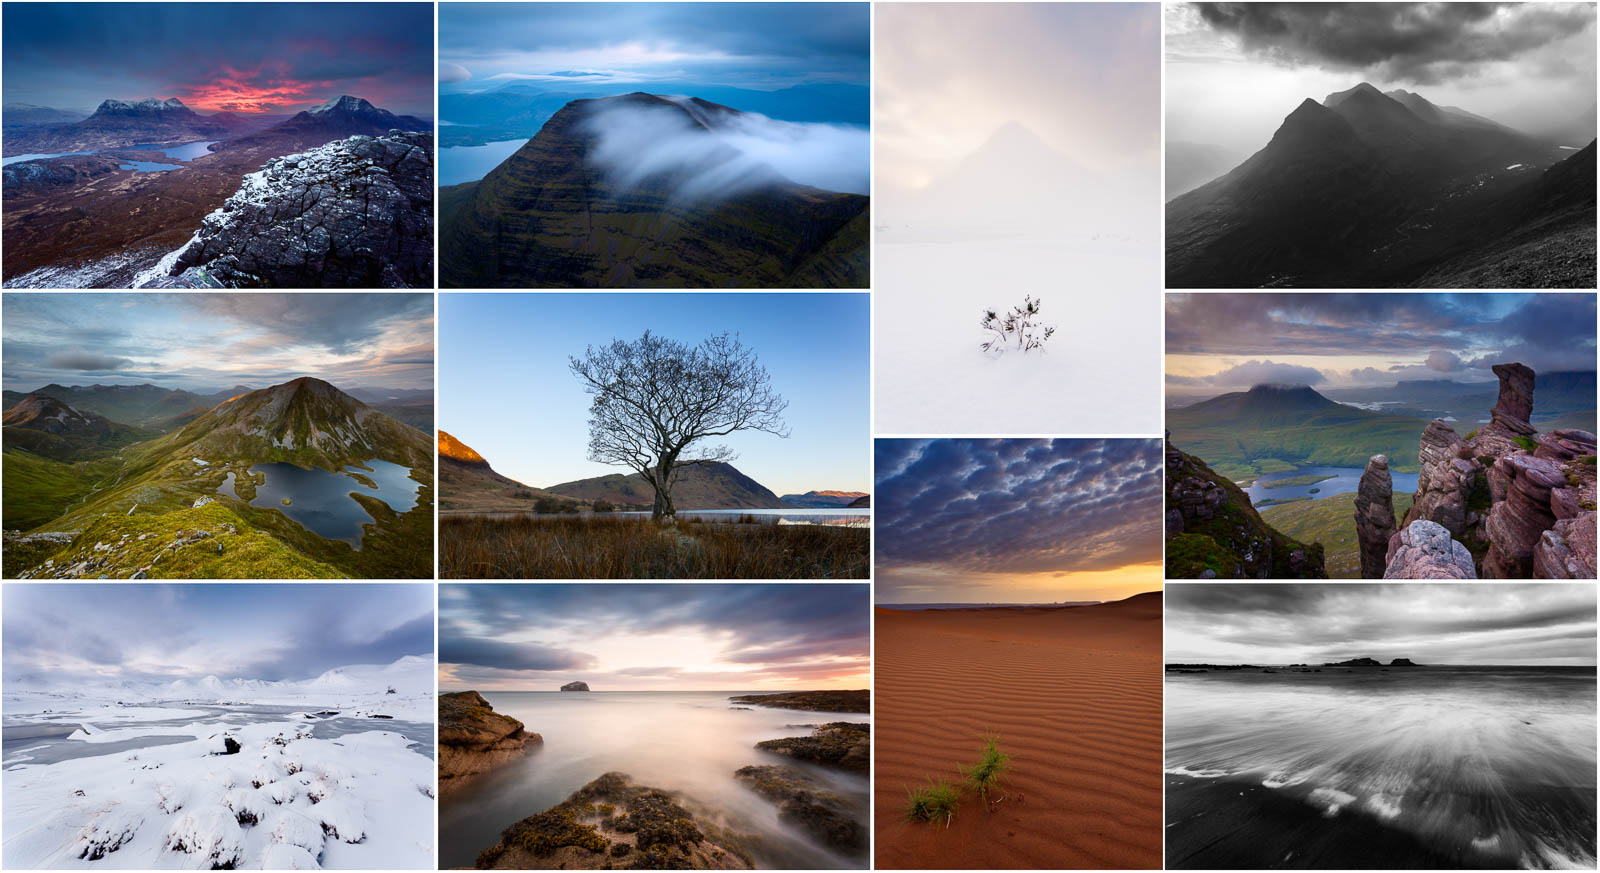 Fine art landscape photography of Scotland, in particular mountains of the Scottish Highlands